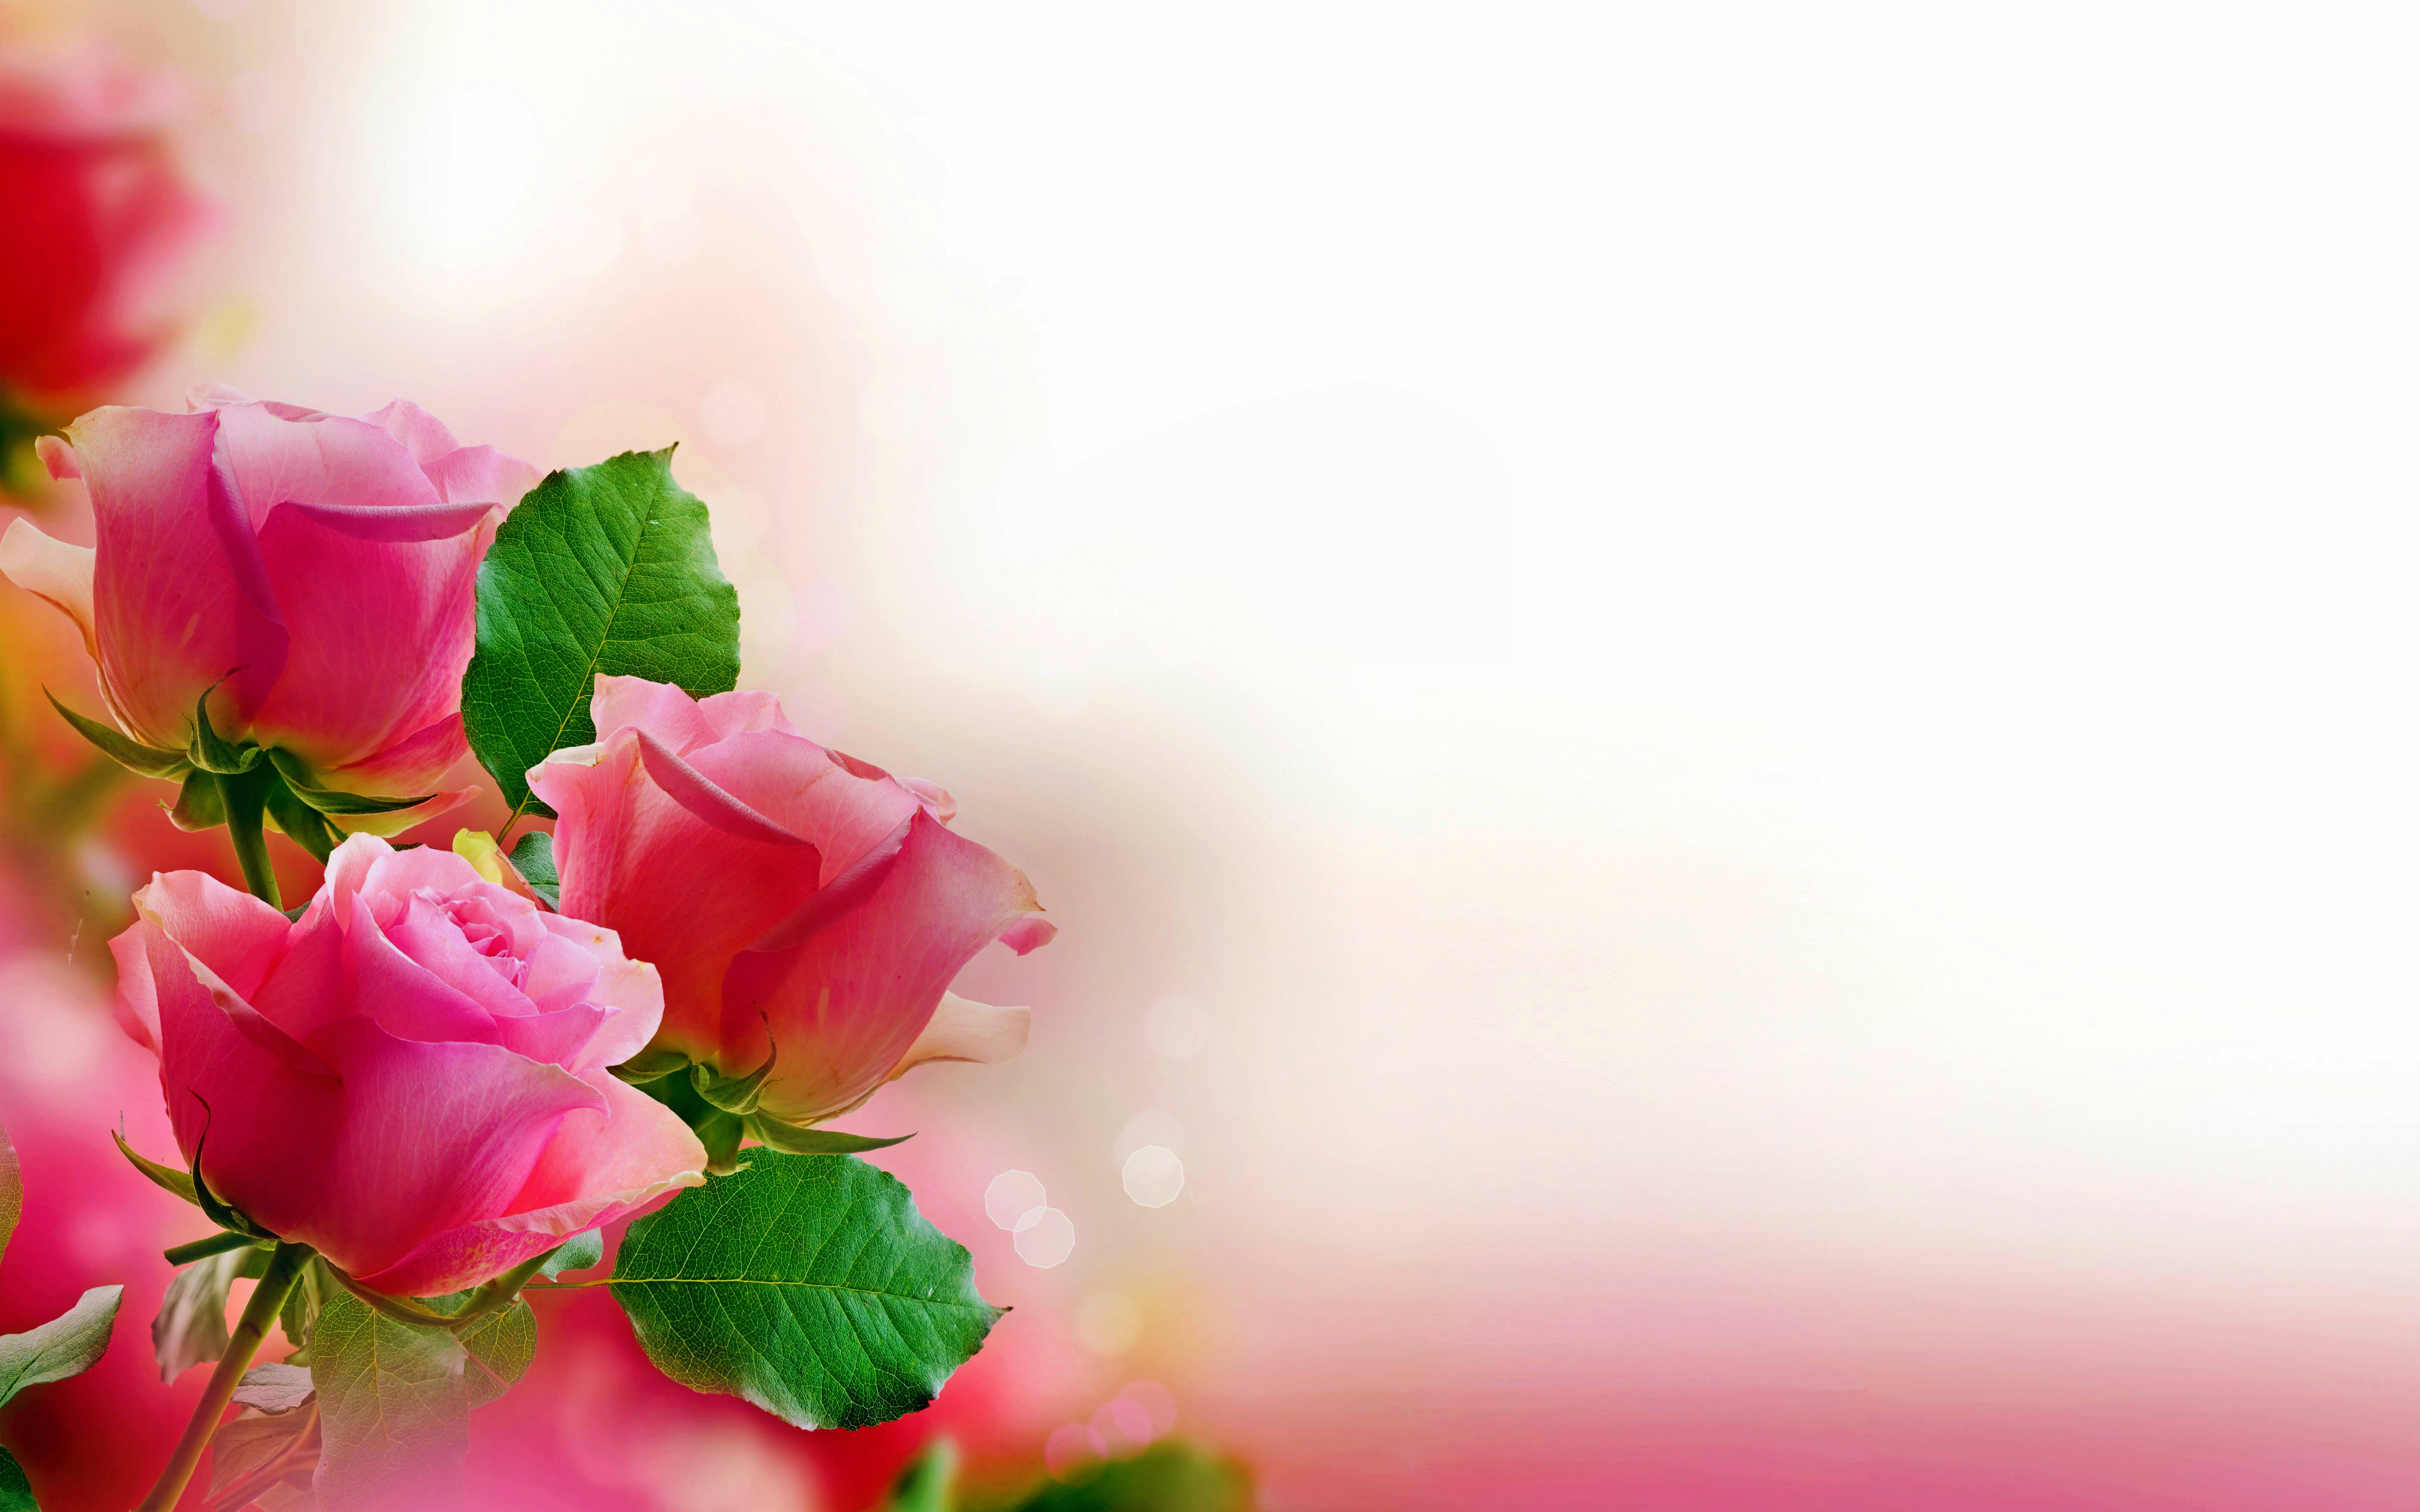 95 Pink Rose HD Wallpapers | Backgrounds - Wallpaper Abyss